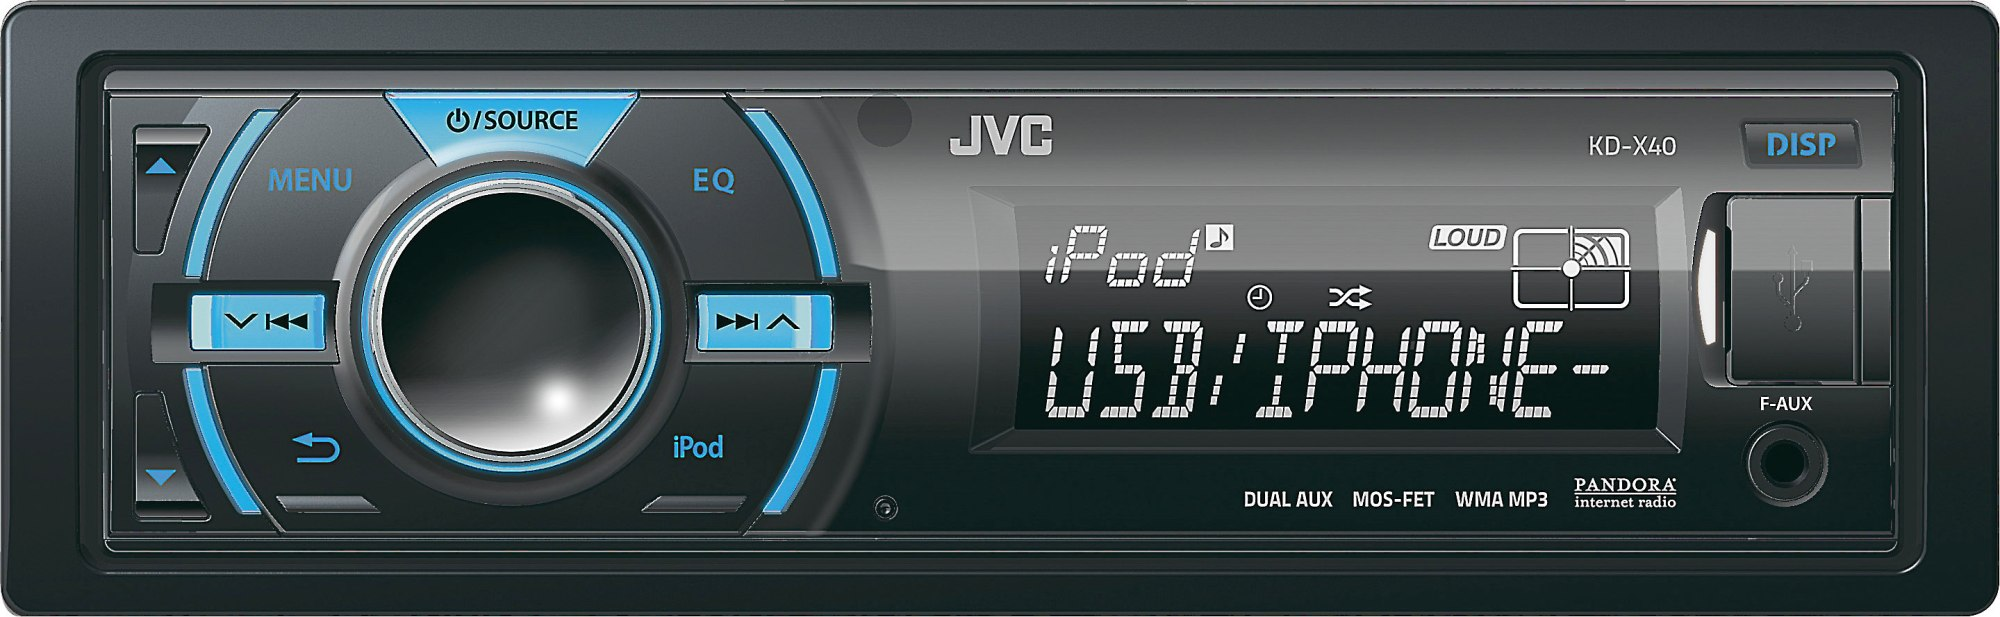 hight resolution of jvc kd x40 wiring diagram